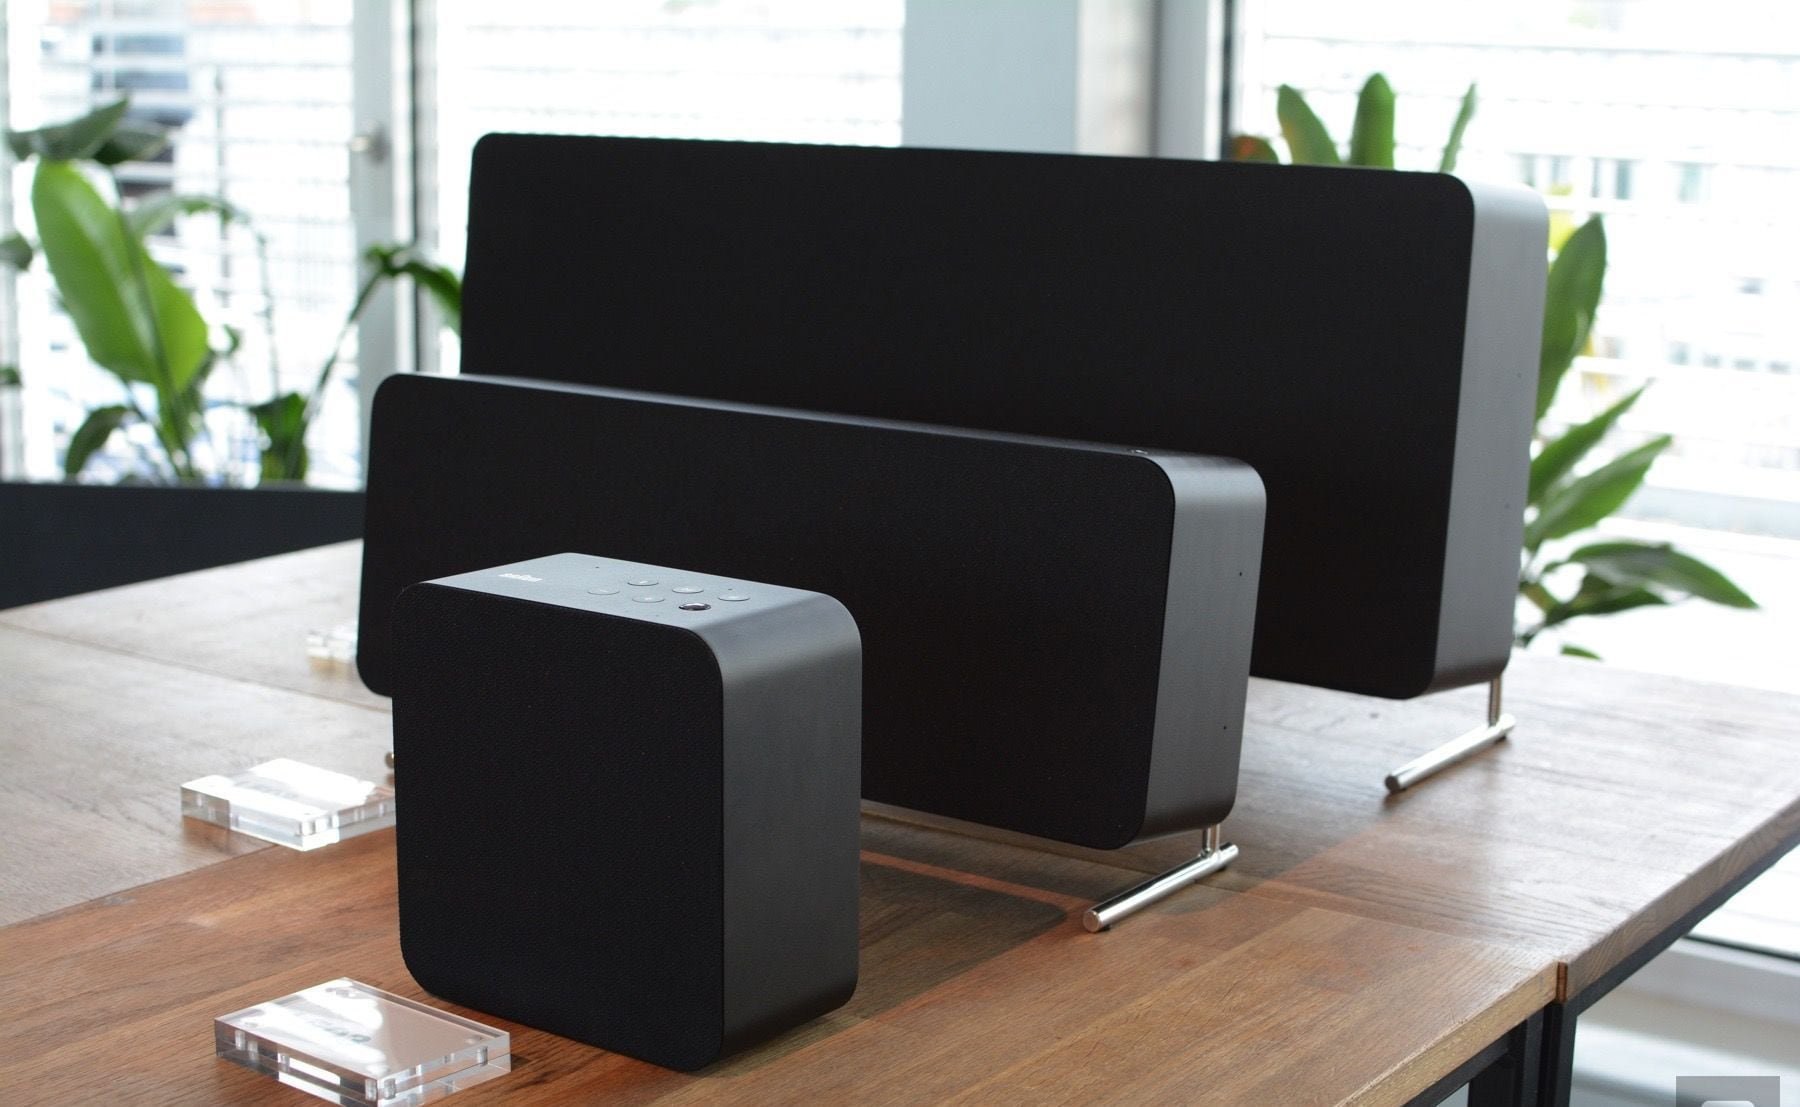 Braun LE Series Speaker Line is a modern take on a minimalist classic